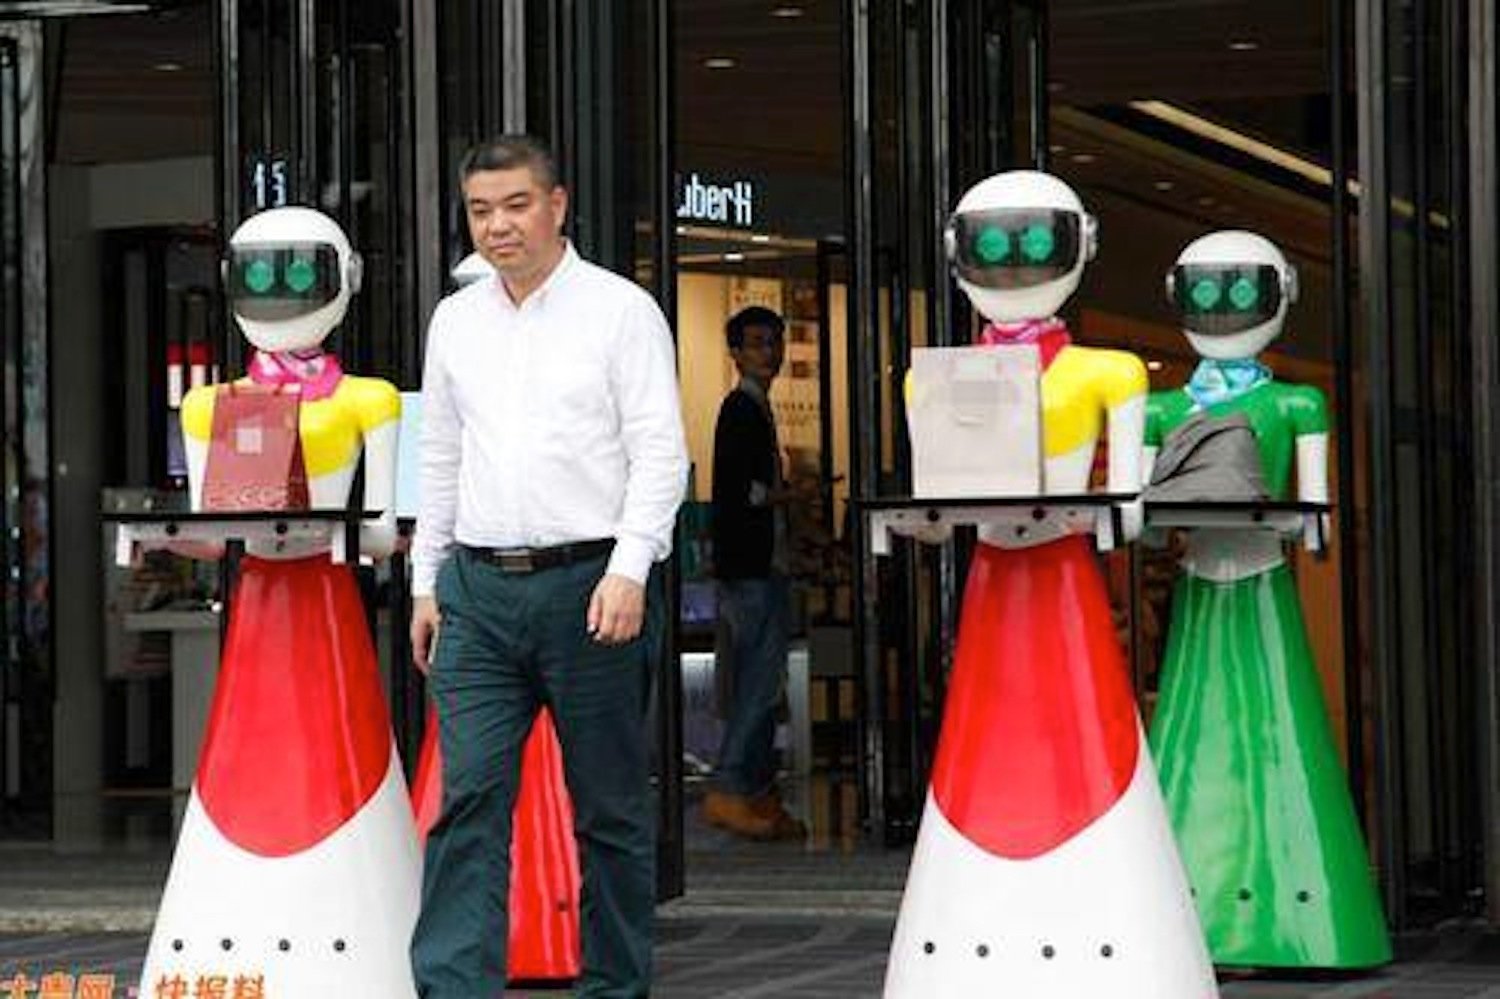 This Man Is So Rich That He Went Shopping With 8 Robotic Maids